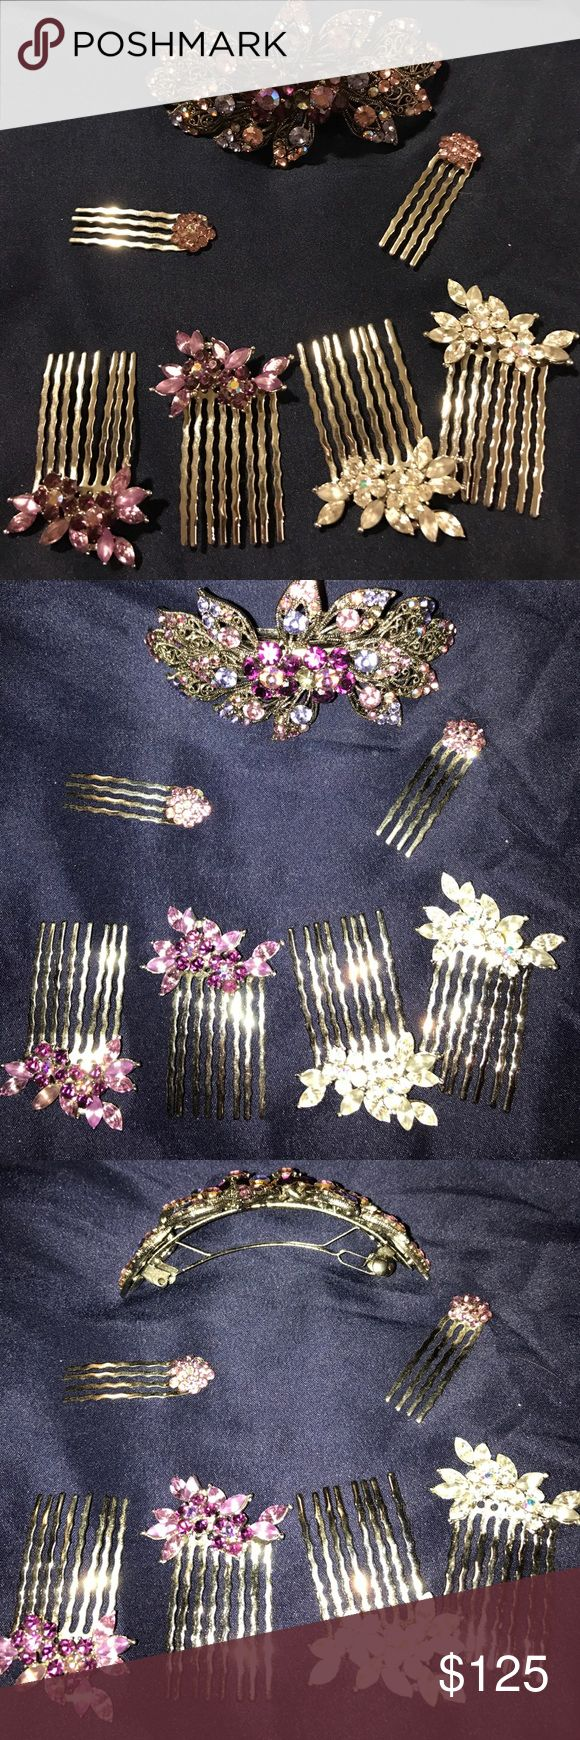 SoHo Style hair clips set of 7 7 gorgeous hair pieces from SoHo Style. Worn 2 times with fake hair, still gorgeous, kept in a silk pouch waiting to go home with you! SoHo Style Accessories Hair Accessories